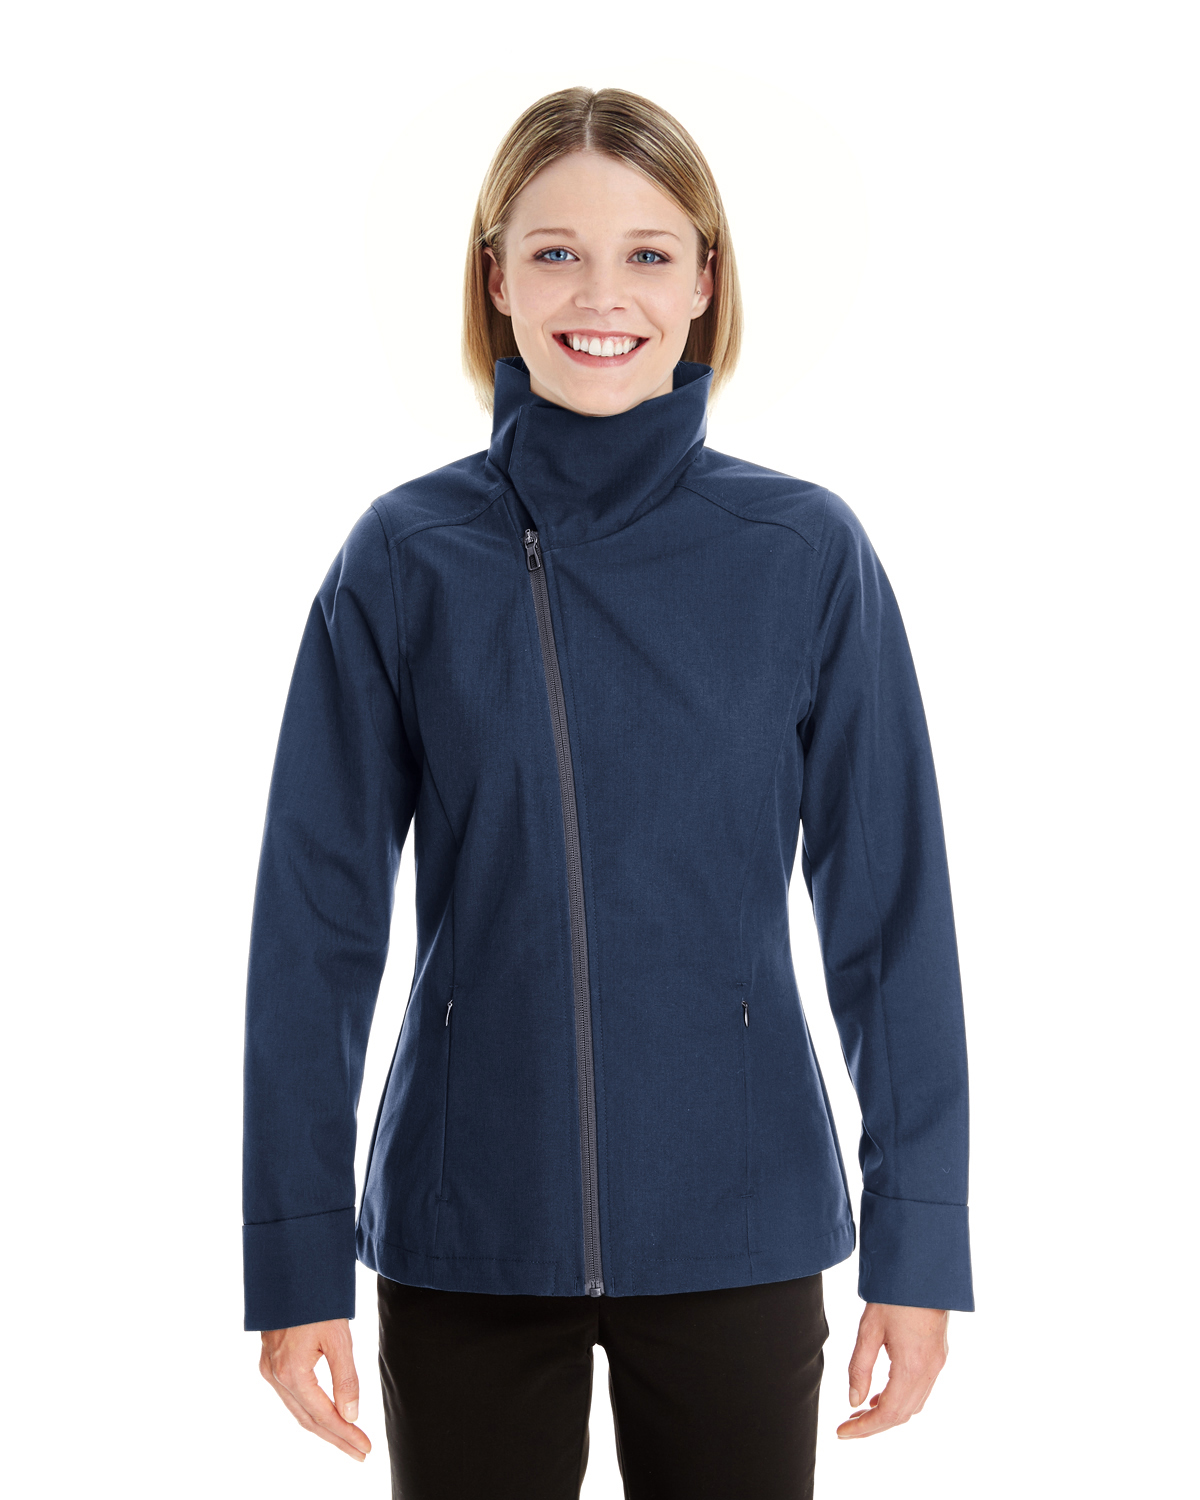 Ash City - North End NE705W - Ladies' Edge Soft Shell Jacket with Fold-Down Collar